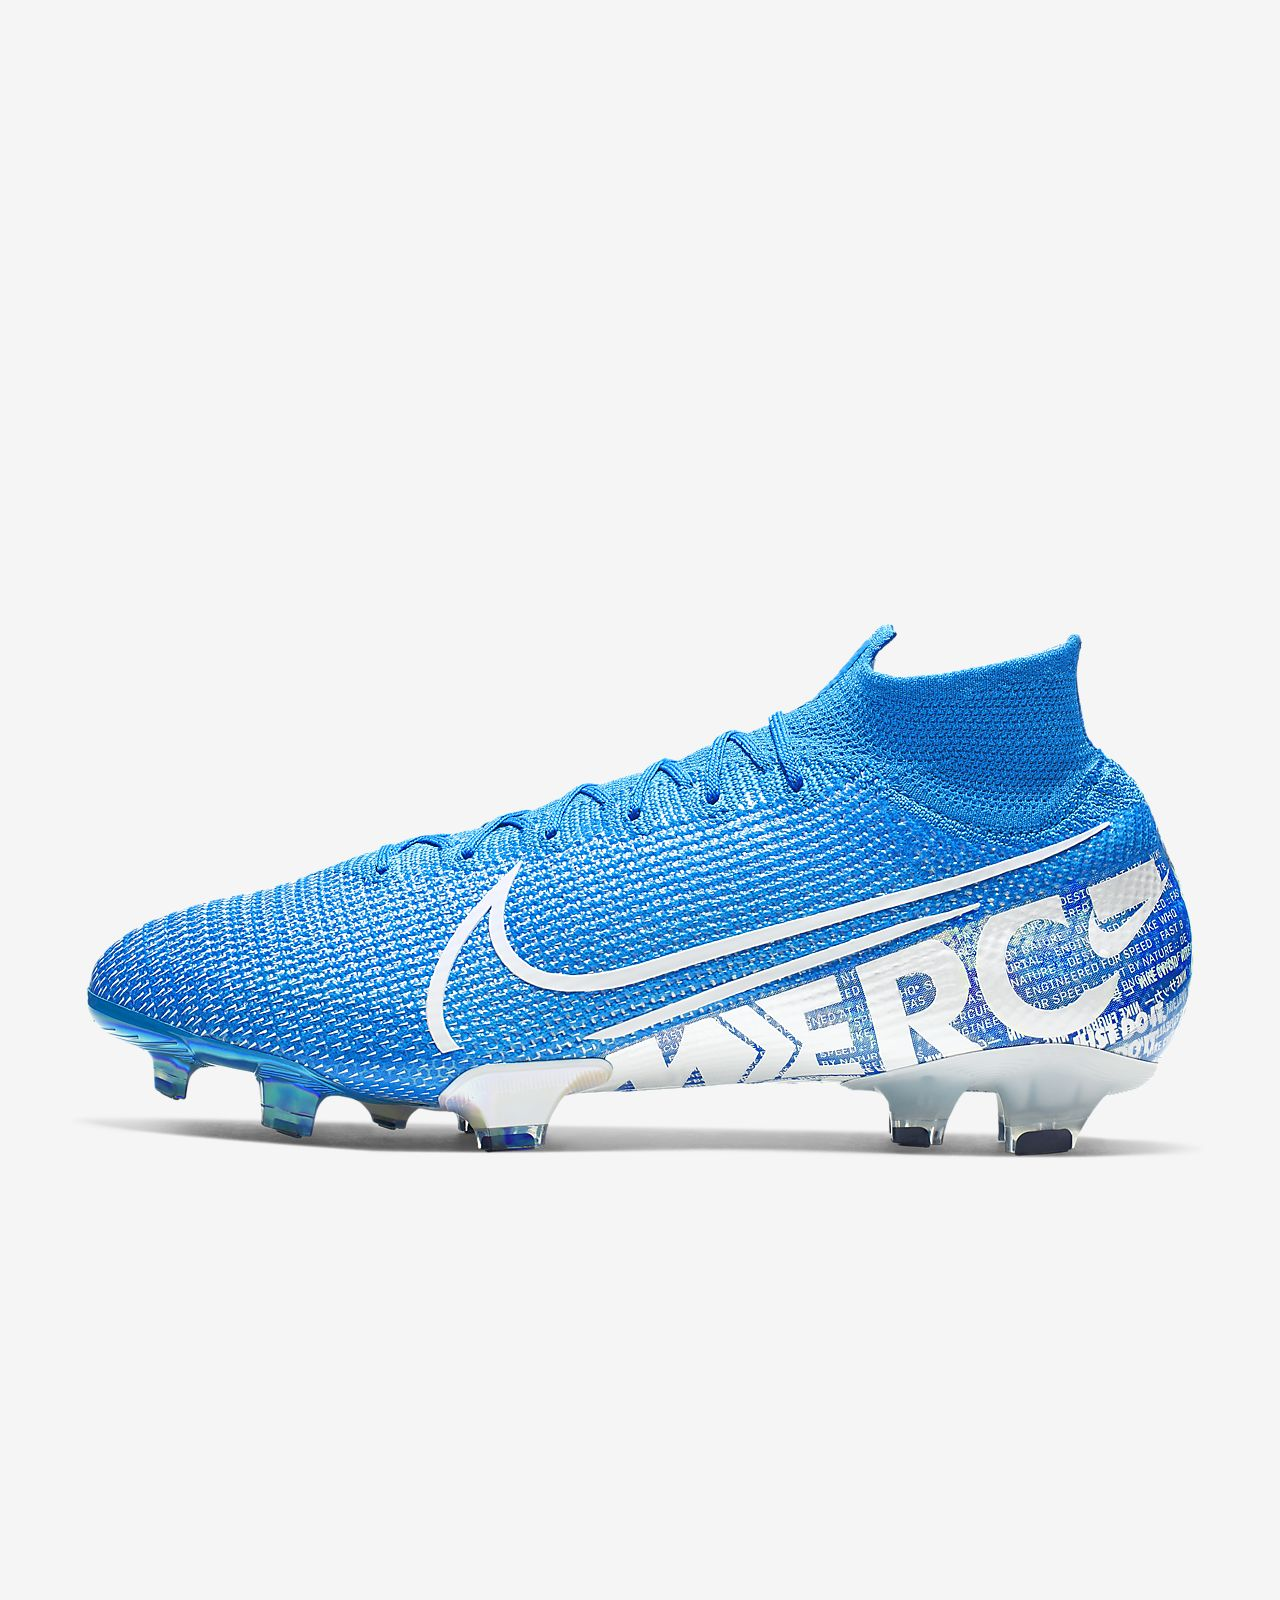 Nike Schuhe Kinder Nike Mercurial Superfly 360 Elite Firm